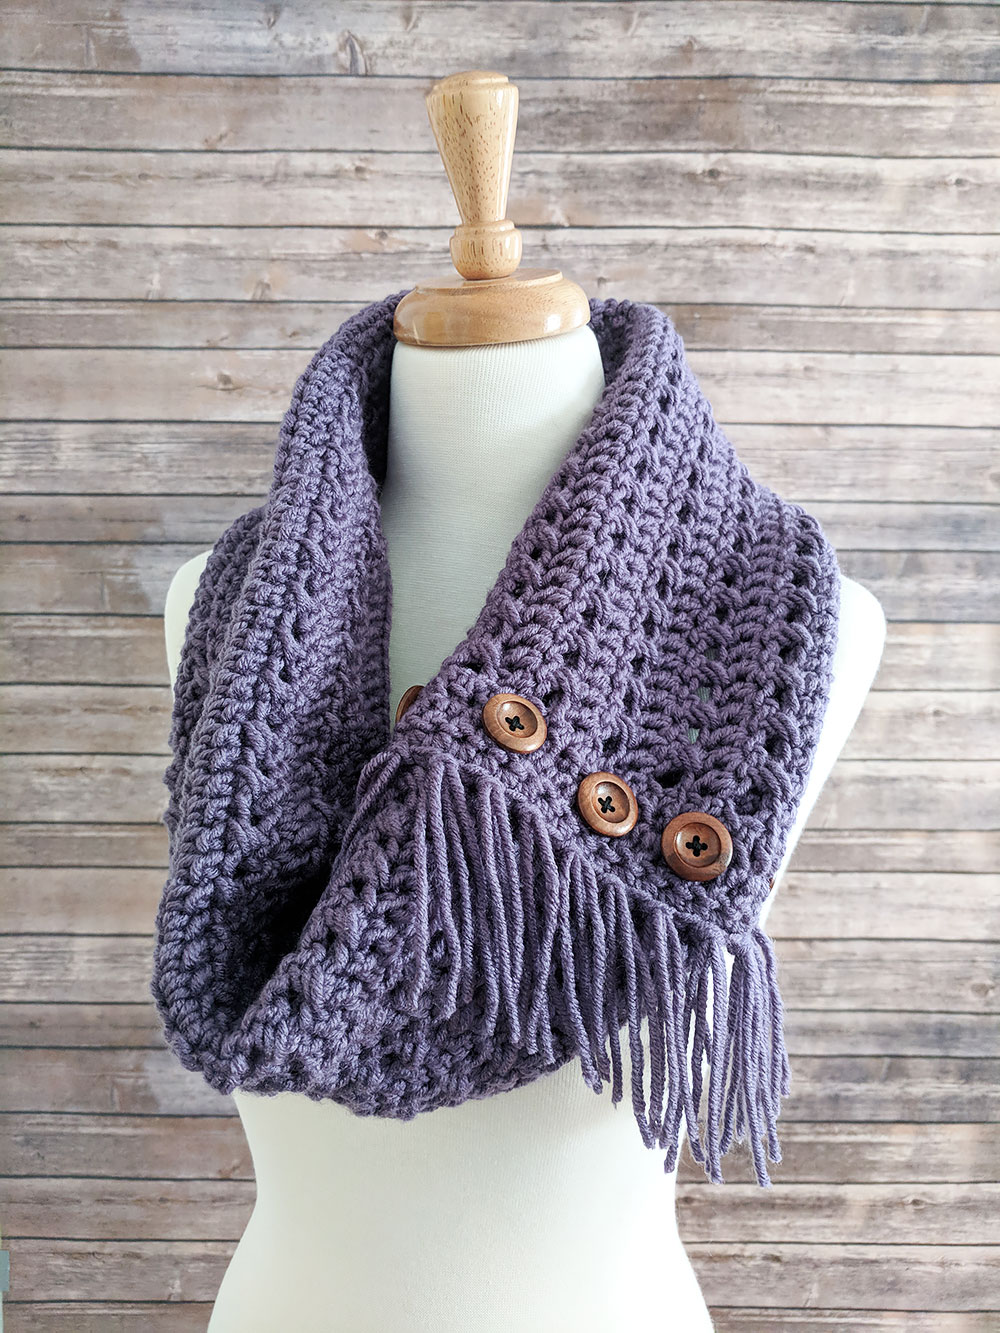 Textured Woodland Crochet Cowl Pattern Free Pattern By